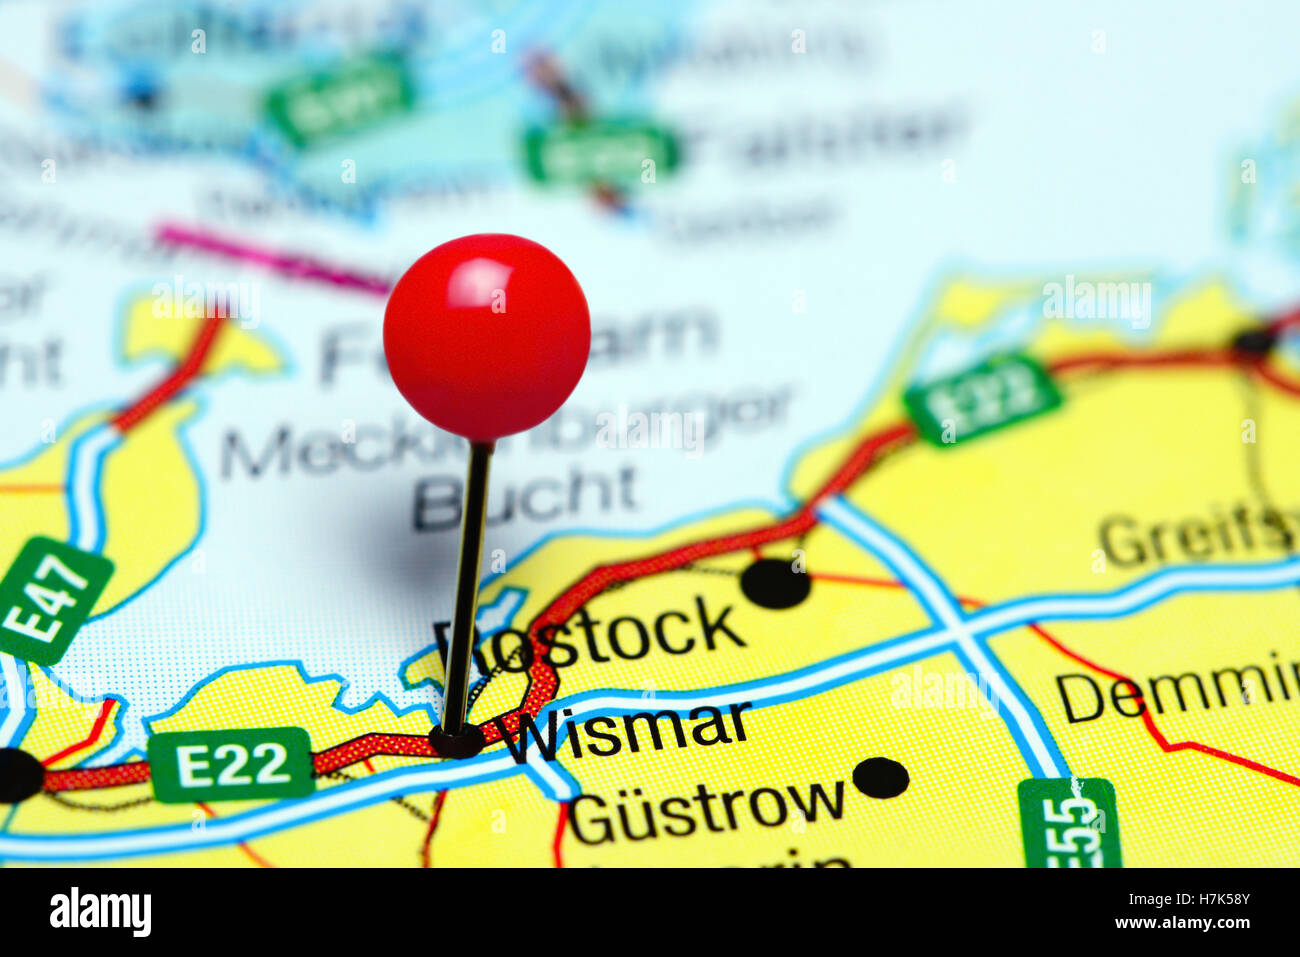 Wismar pinned on a map of Germany - Stock Image